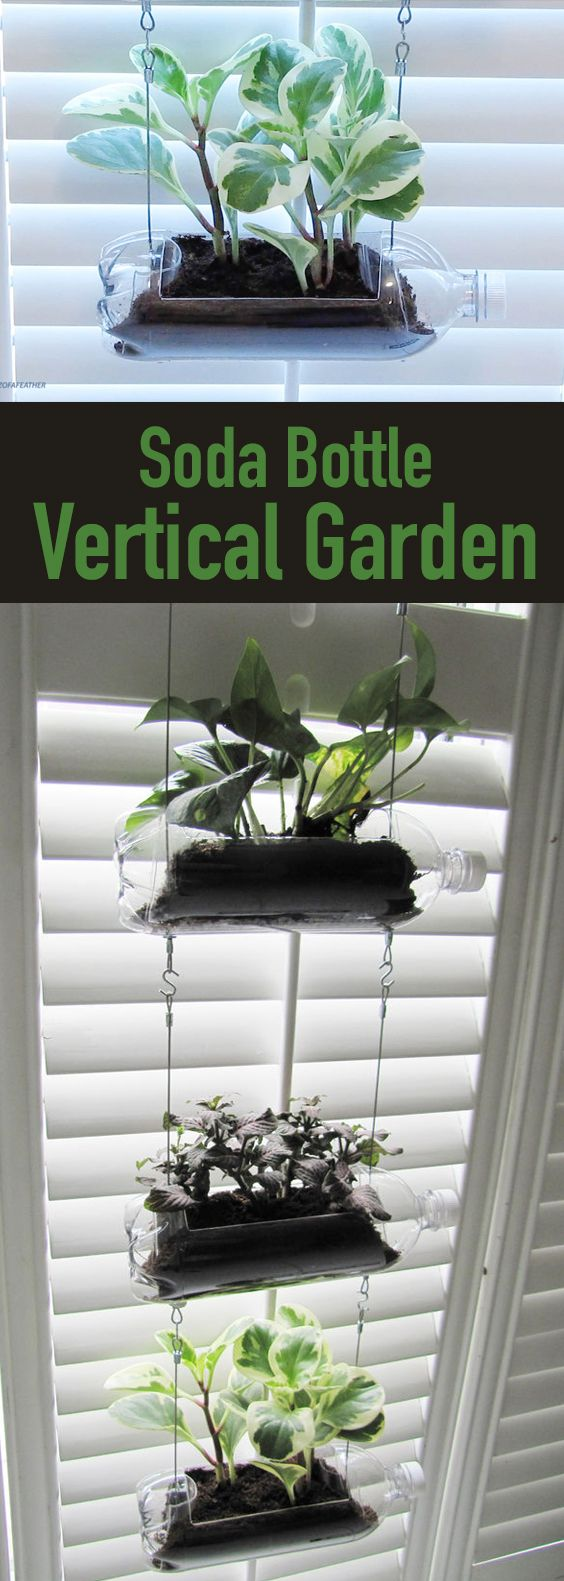 Learn how to create a vertical garden by turning plastic bottles into a hanging planter. Plastic bottle crafts | plastic bottle crafts DIY | plastic bottle planter | plastic bottle planters hanging | plastic bottle planters DIY | planters DIY | planter ideas | #plasticbottles #plasticbottlecrafts #planters #planterideas